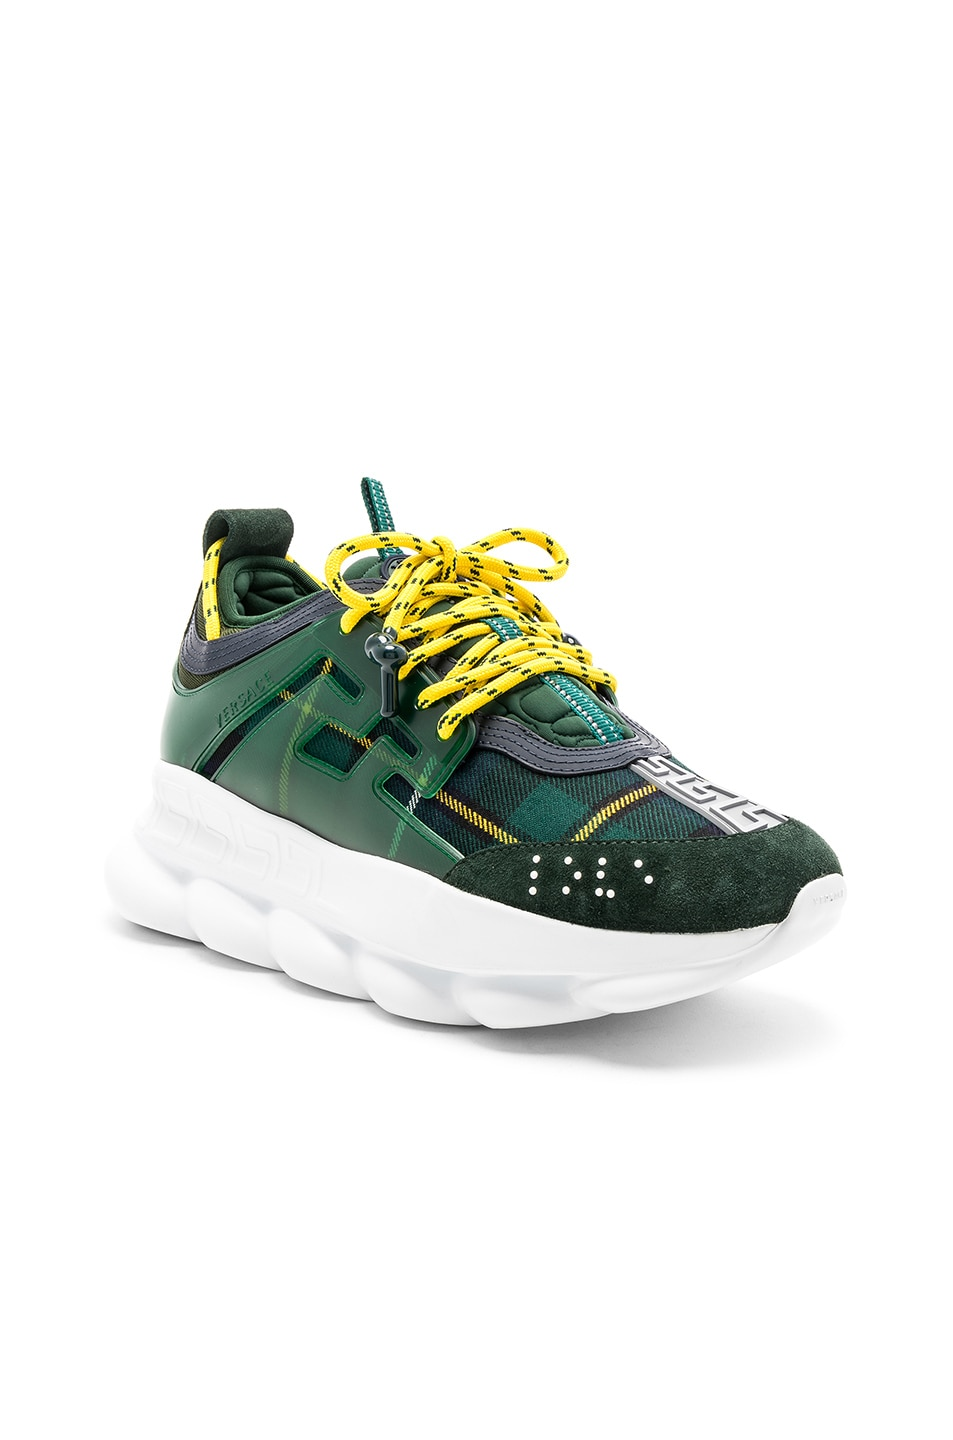 2962a7aa96 VERSACE Chain Reaction Sneakers in Green   FWRD